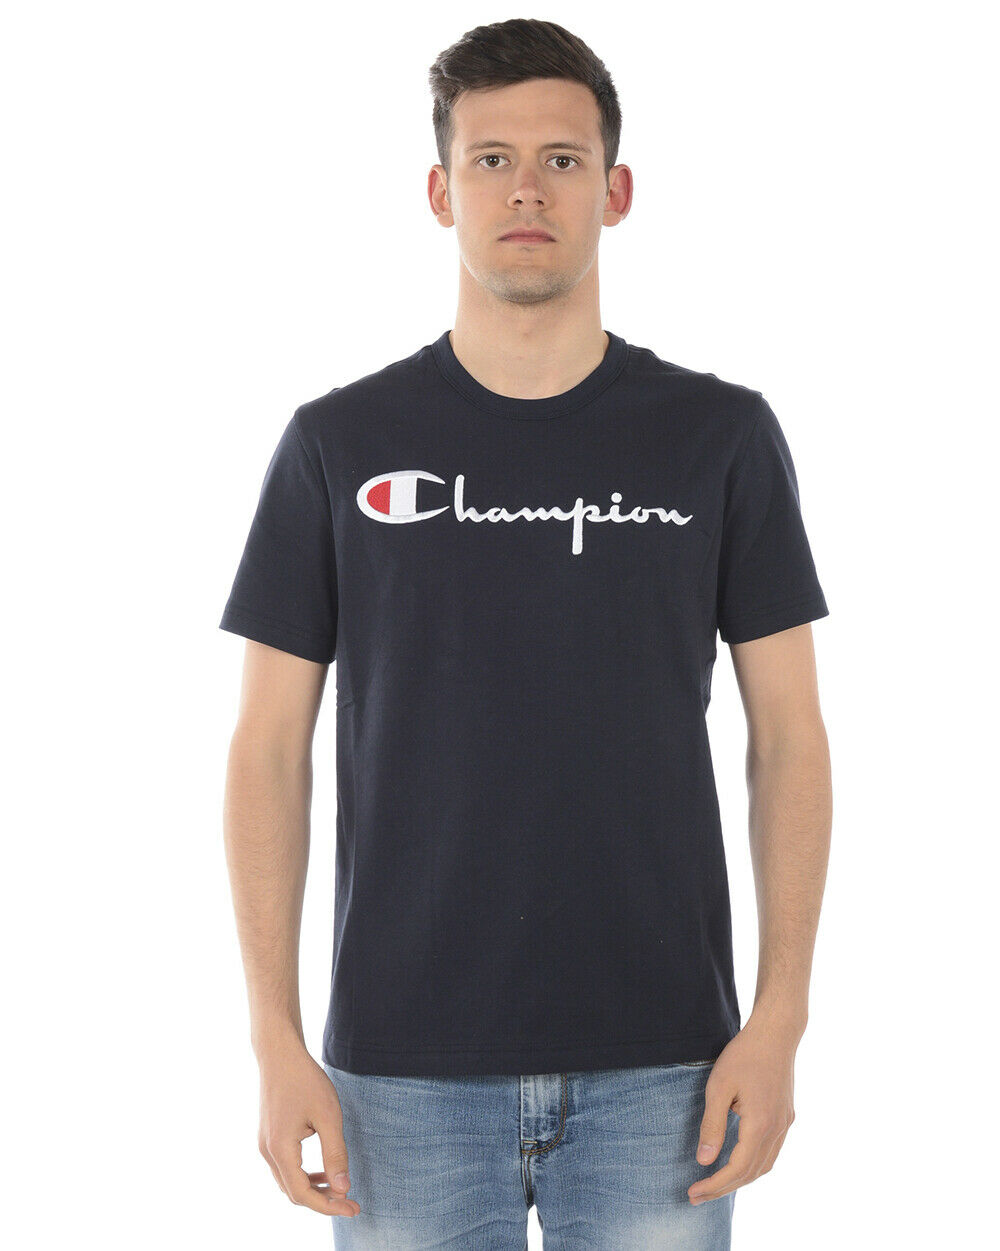 Champion T Shirt Sweatshirt Cotton Man Blau 210972 BS501 Sz XXL MAKE OFFER